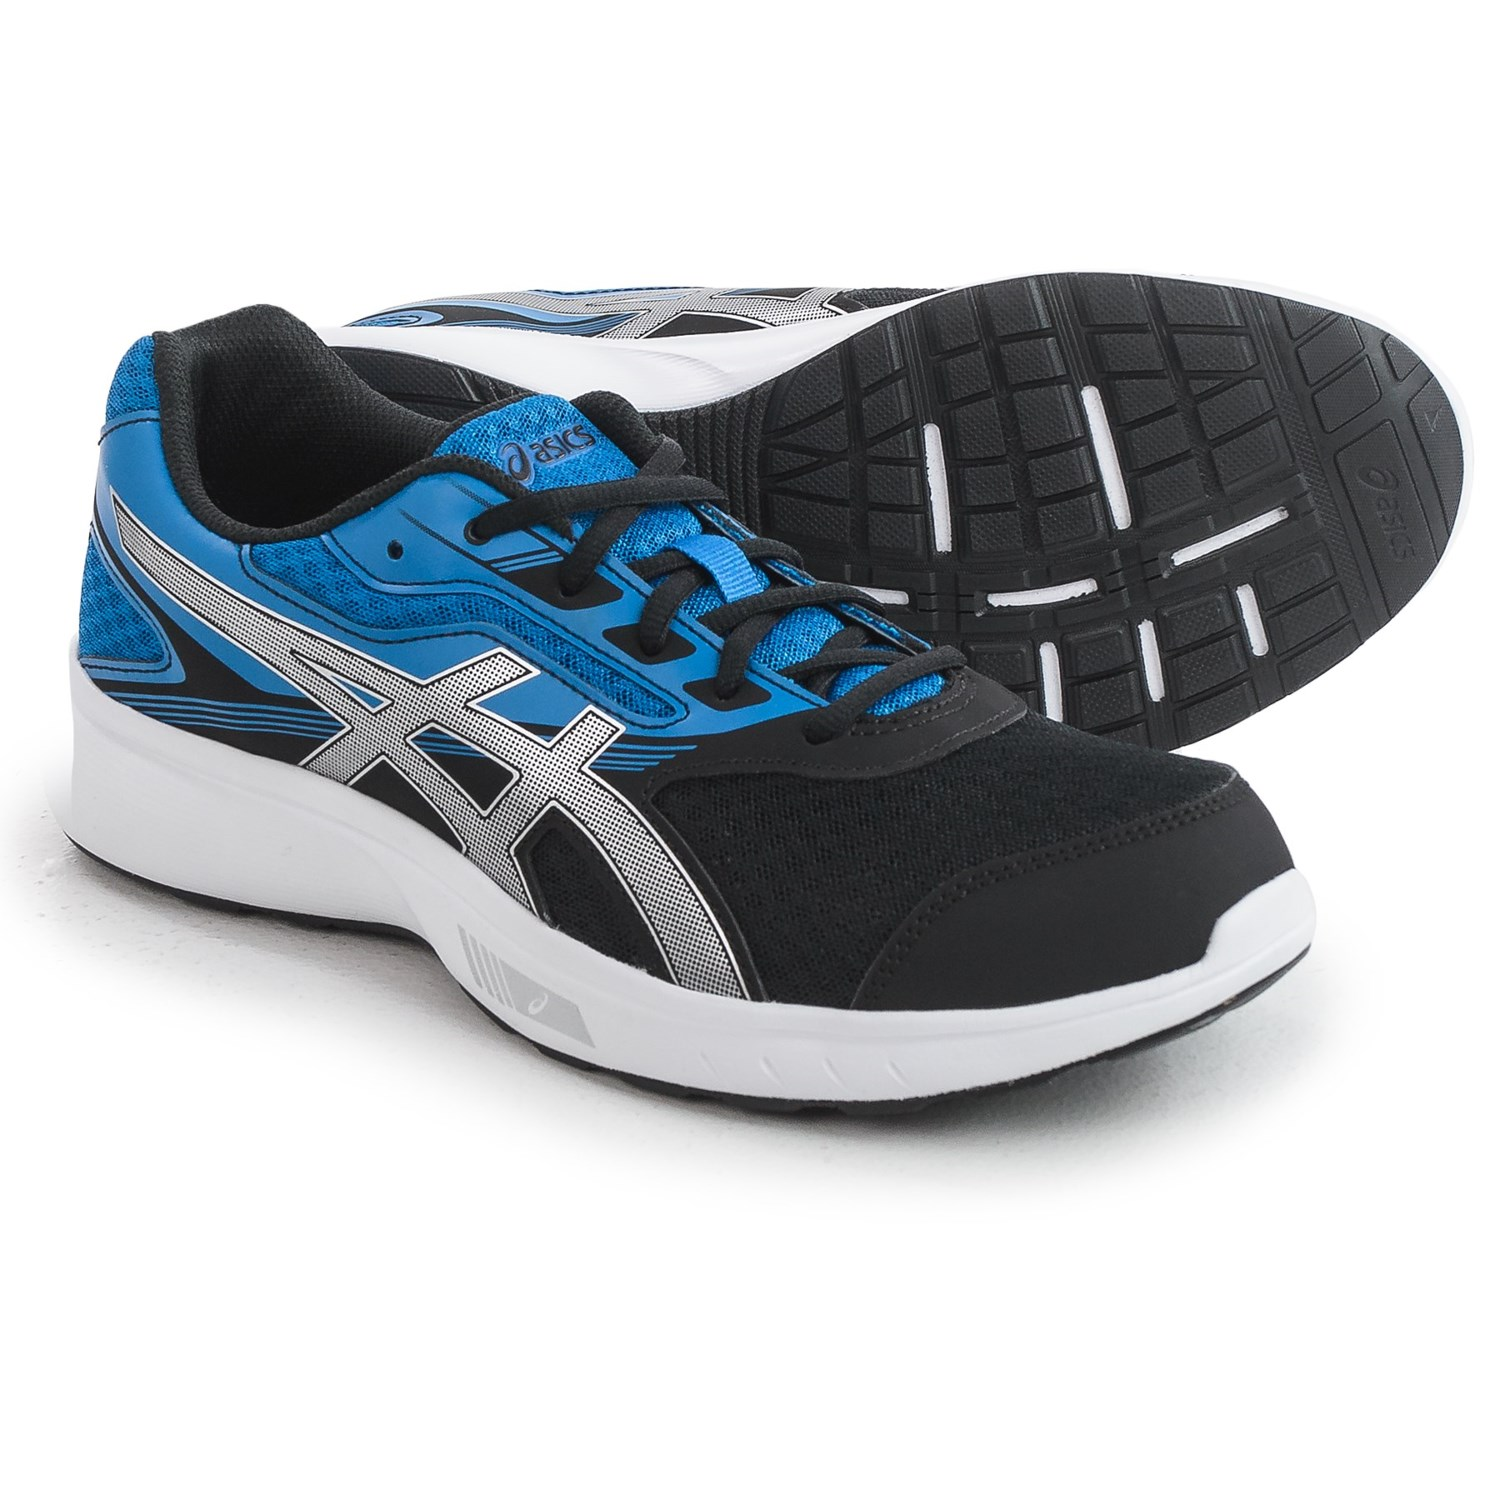 6031c085624b ASICS Stormer Men s Running Shoes